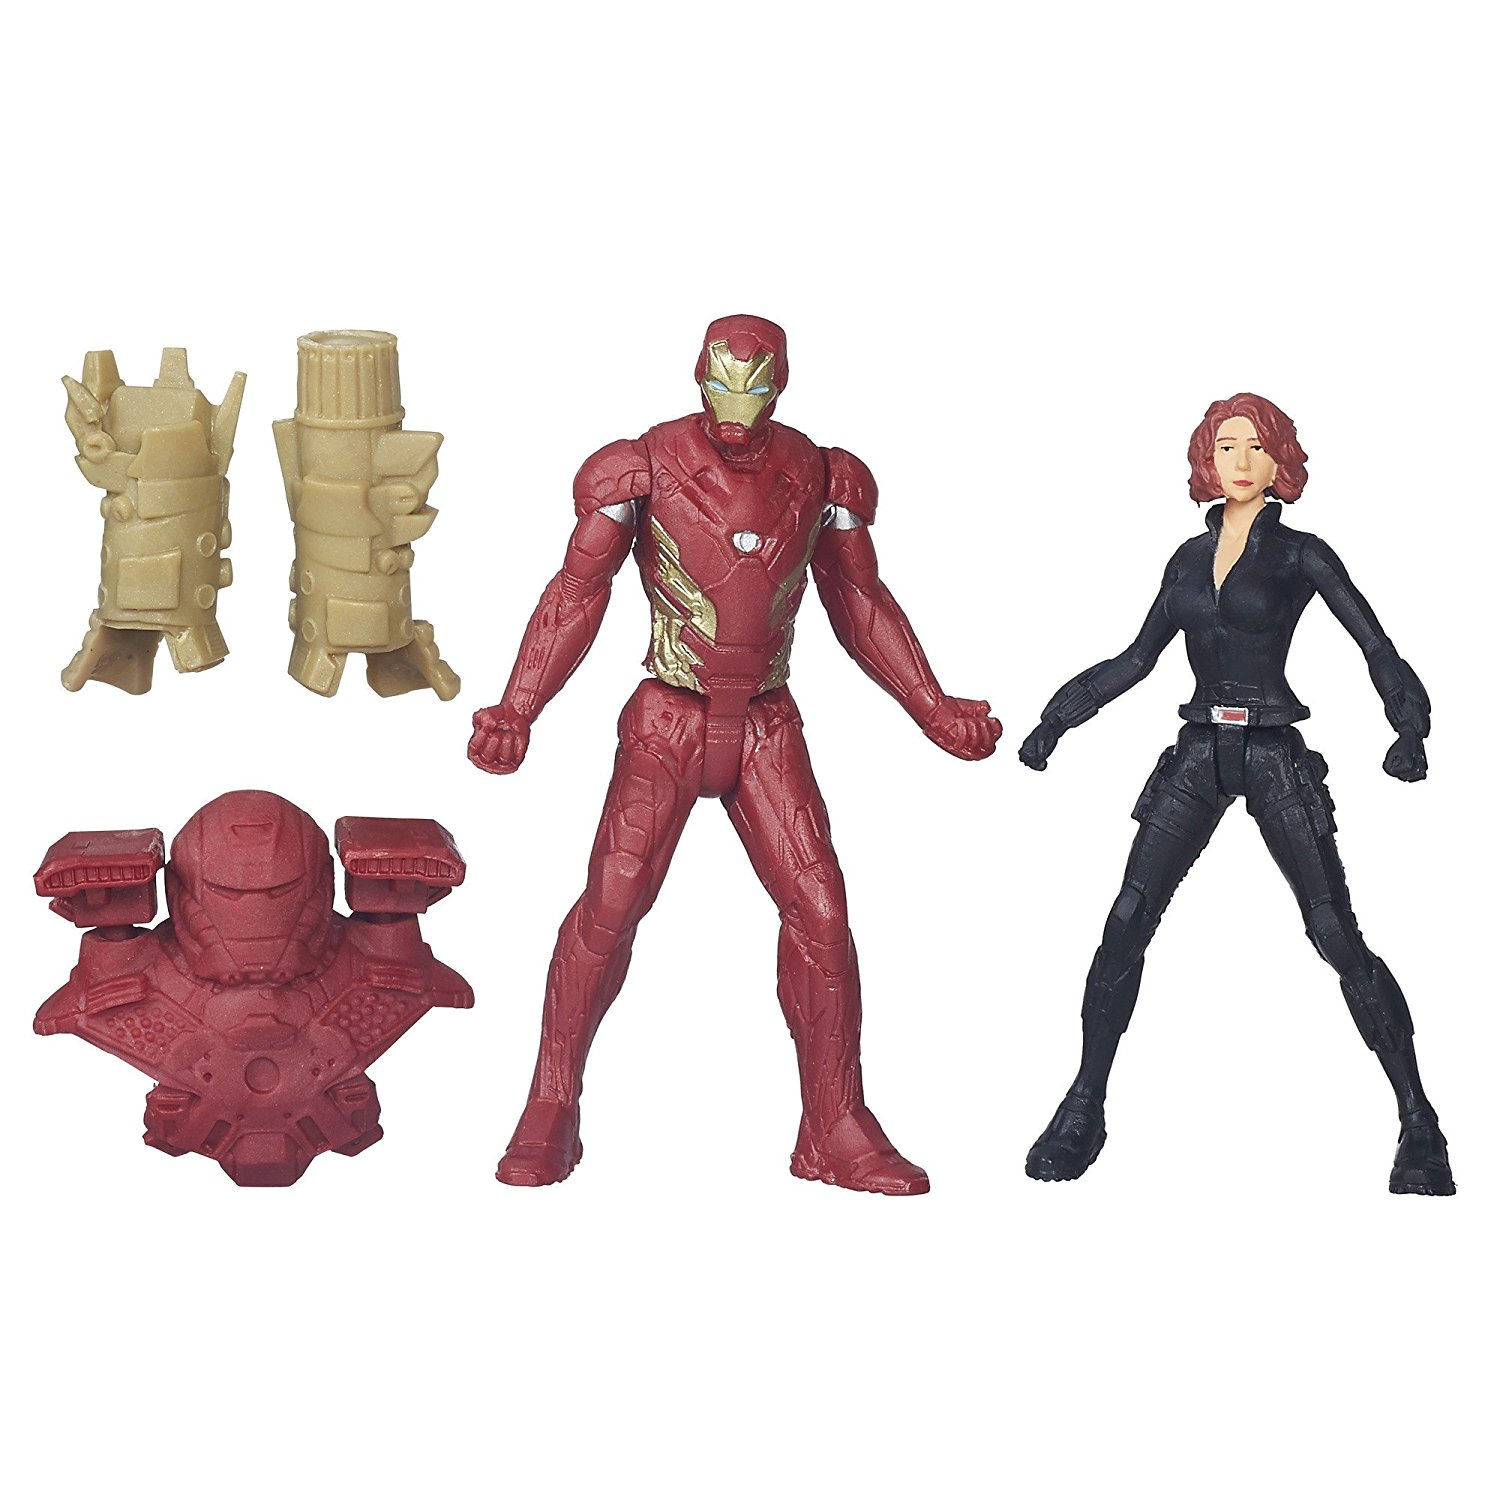 Marvel Captain America: Civil War Iron Man & Black Widow